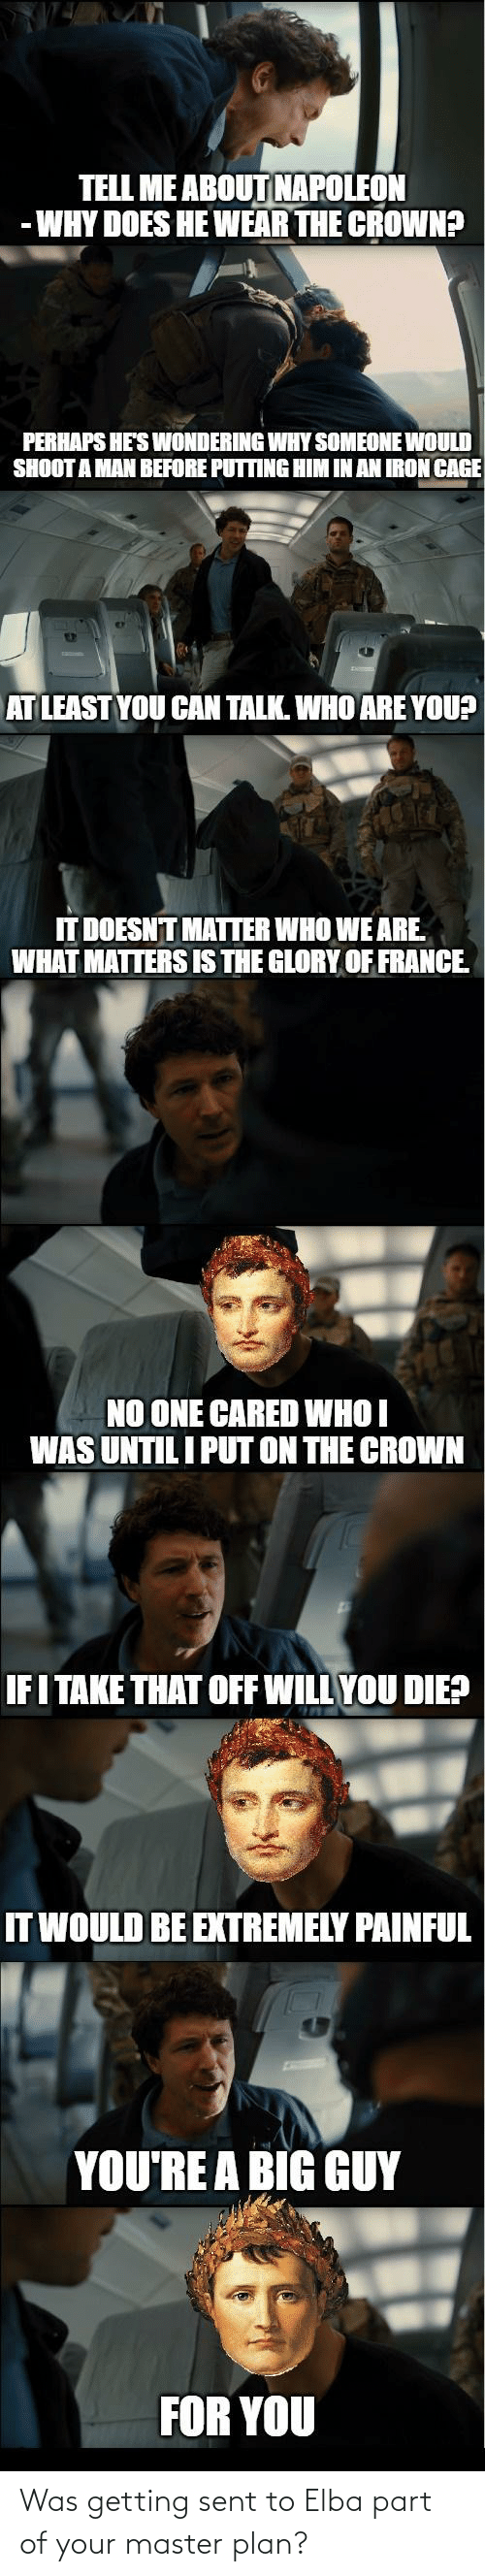 Youre A Big Guy For You: TELL ME ABOUT NAPOLEON  - WHY DOES HE WEAR THE CROWN?  PERHAPS HE'S ONDERING WHY SOMEONE WOULD  SHOOT A MAN BEFORE PUTTING HIM IN AN IRON CAGE  AT LEAST YOU CAN TALK. WHO ARE YOU?  IT DOESNT MATTER WHO WE ARE.  WHAT MATTERS IS THE GLORY OF FRANCE.  NO ONE CARED WHO I  WAS UNTIL I PUT ON THE CROWN  IF I TAKE THAT OFF WILL YOU DIE?  IT WOULD BE EXTREMELY PAINFUL  YOU'RE A BIG GUY  FOR YOU Was getting sent to Elba part of your master plan?